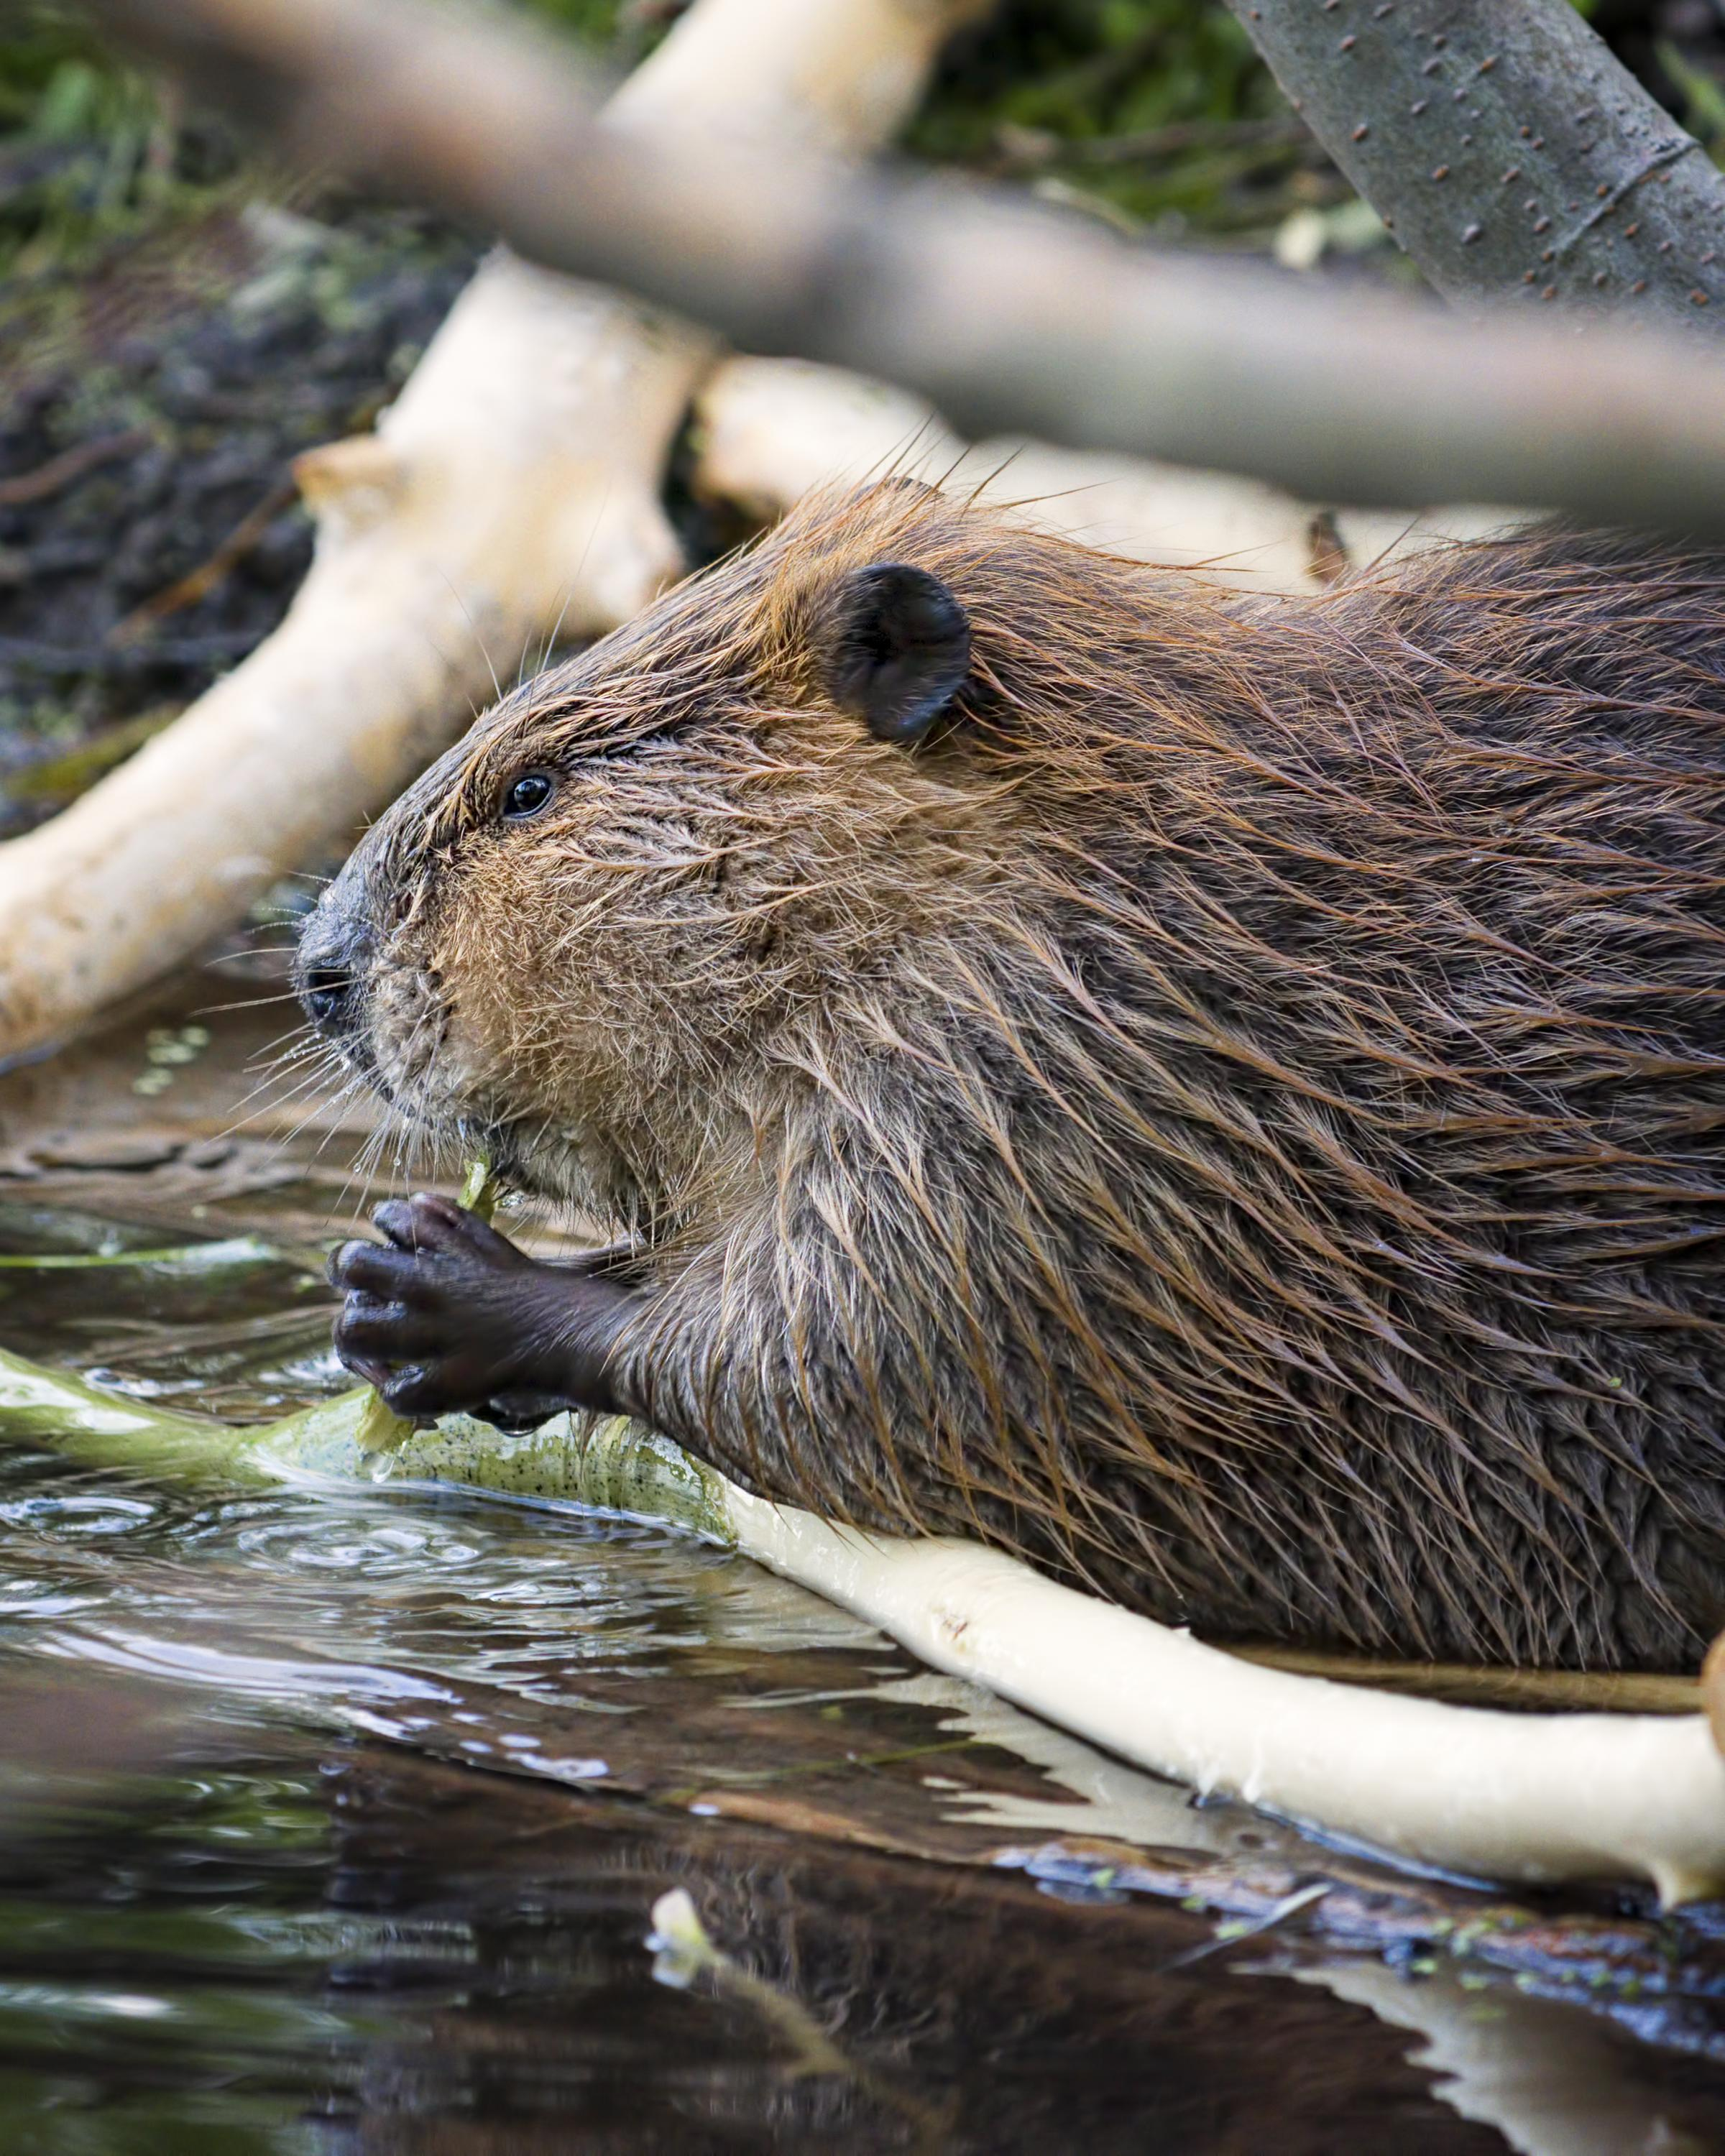 Bring back beavers to stop flooding, urges Mammal Society